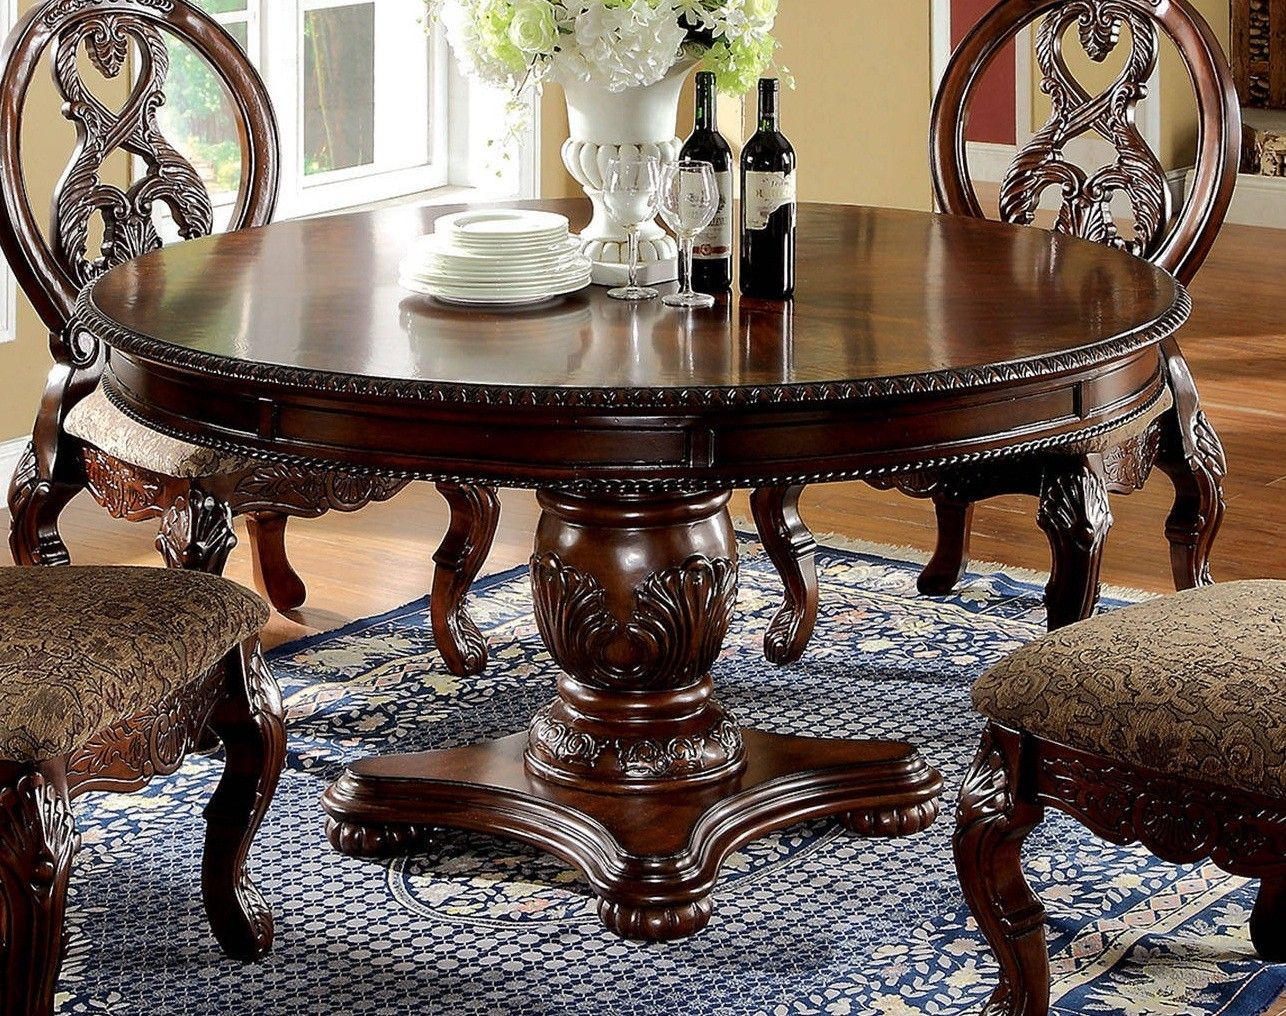 Buy Classic Style Dining Room Furniture From Our Online Store In OrlandoMiami Central Jacksonville Tampa And South Florida FL To Give An Aged Look